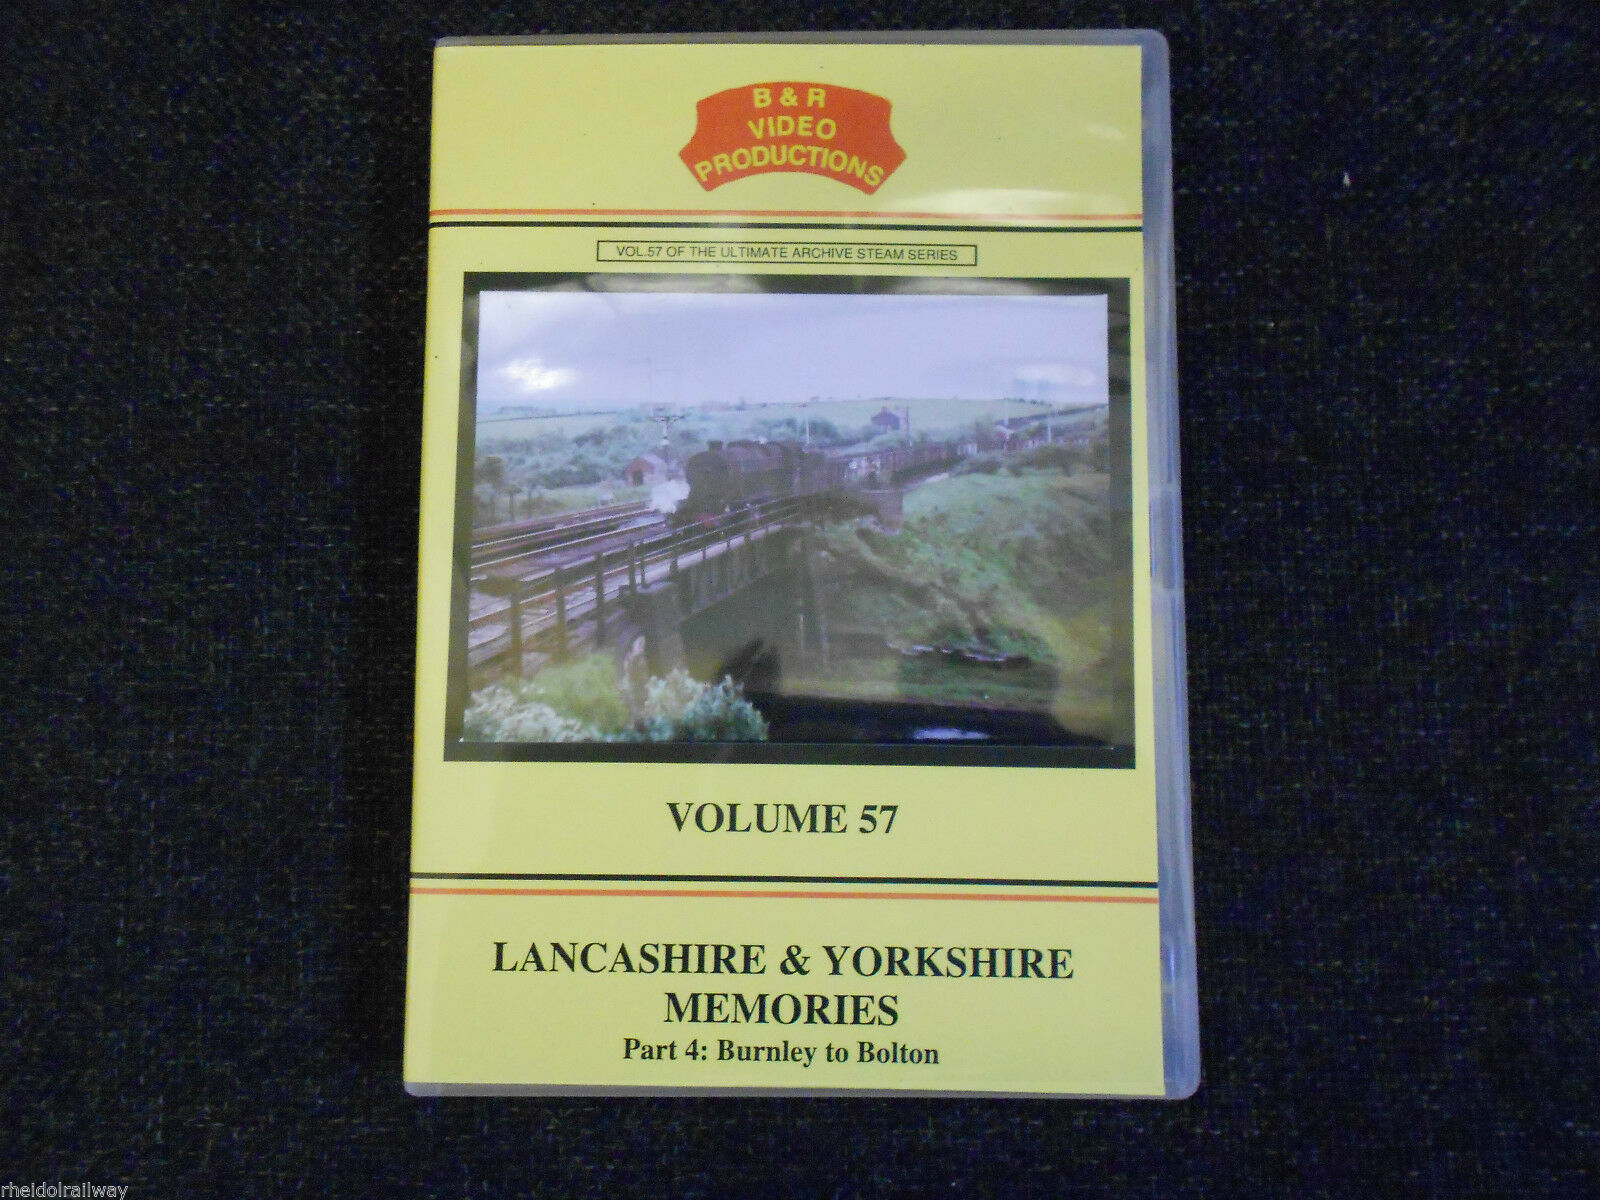 Burnley, Bolton, Chorley, Lancashire & Yorkshire Memories Part 4 B&R Vol 57 DVD - The Vale of Rheidol Railway